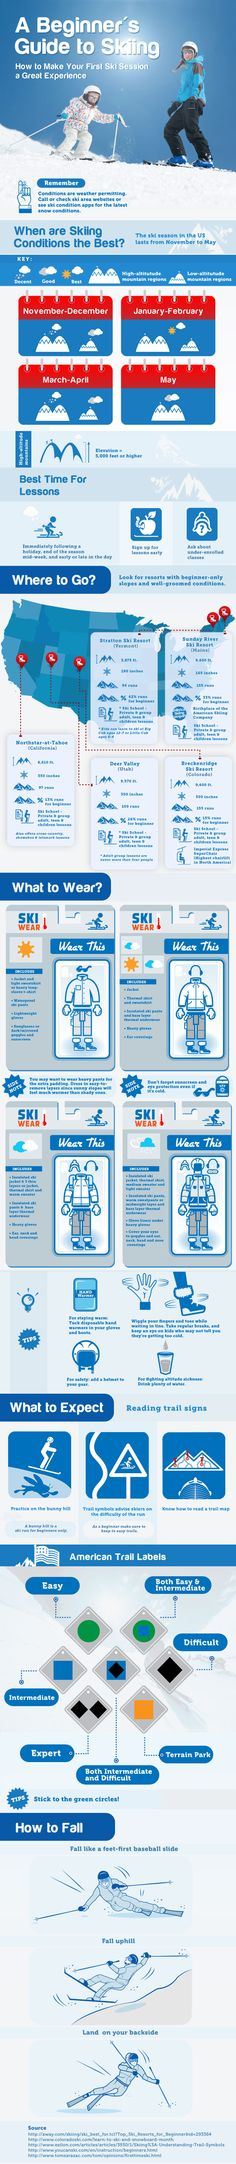 Beginner's Guide to Skiing Infographic...even if you are not a beginner it's a good infographic!